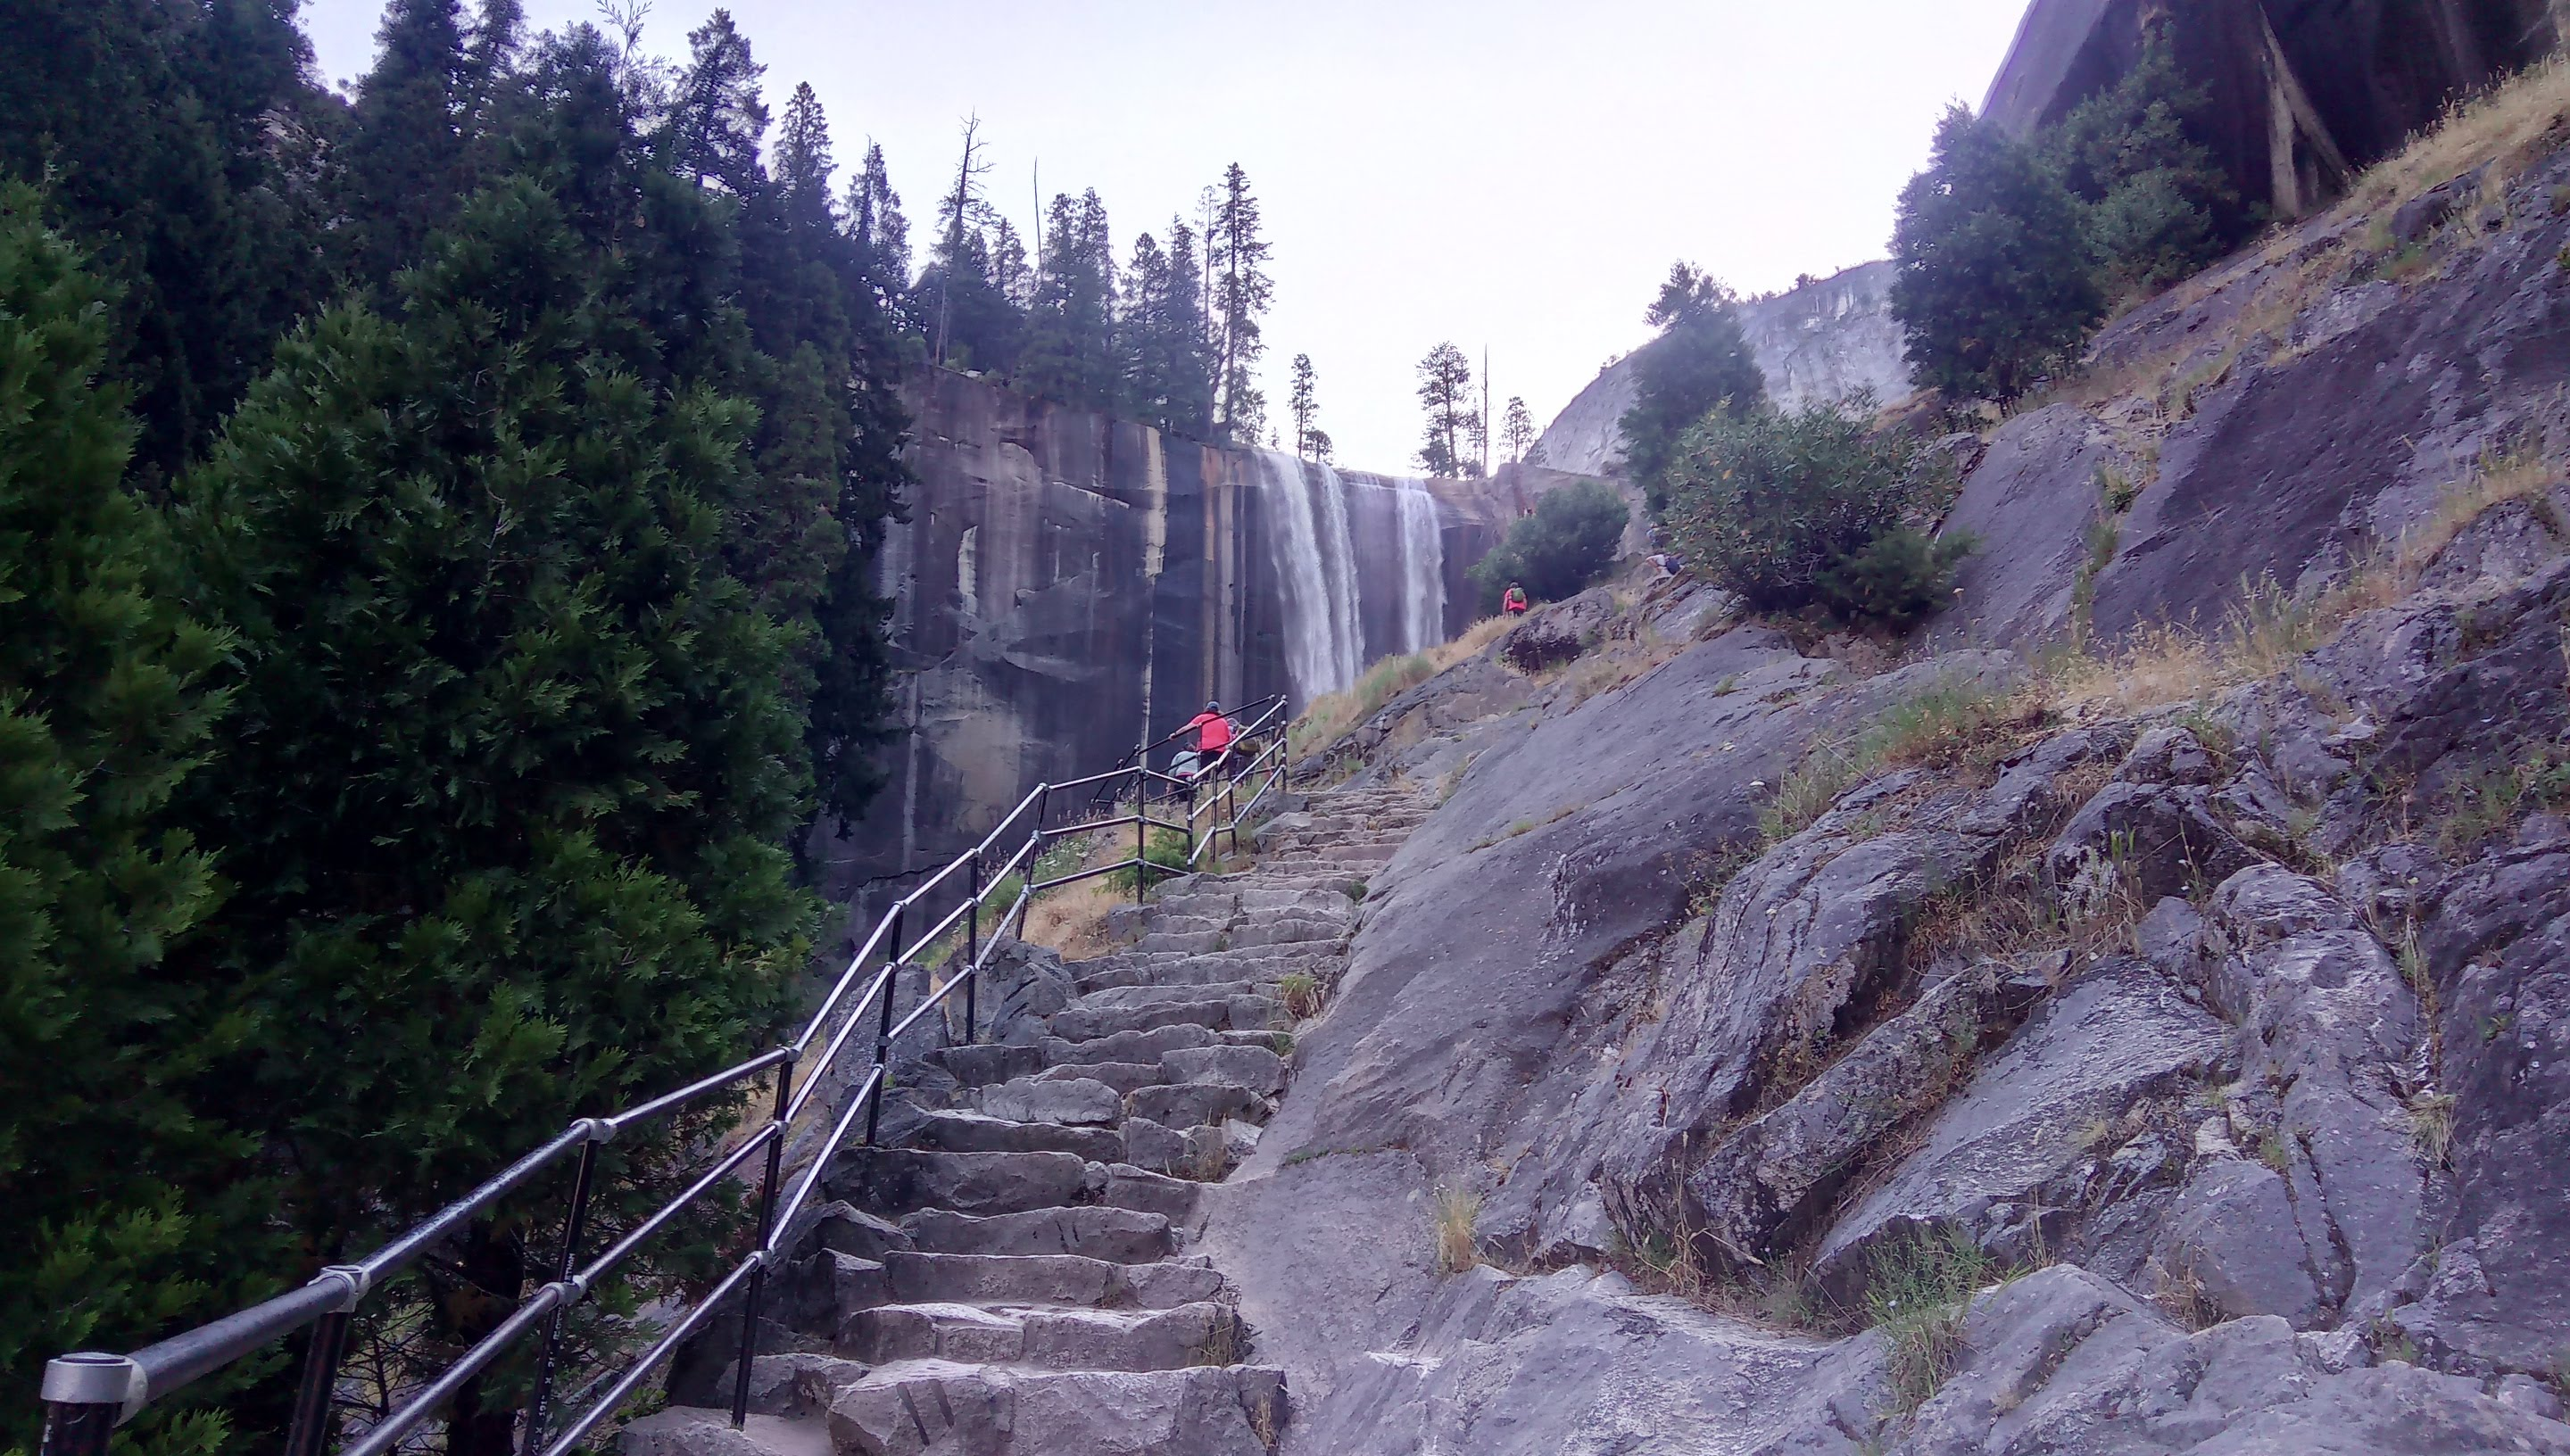 Vernal fall and steps on Mist trail